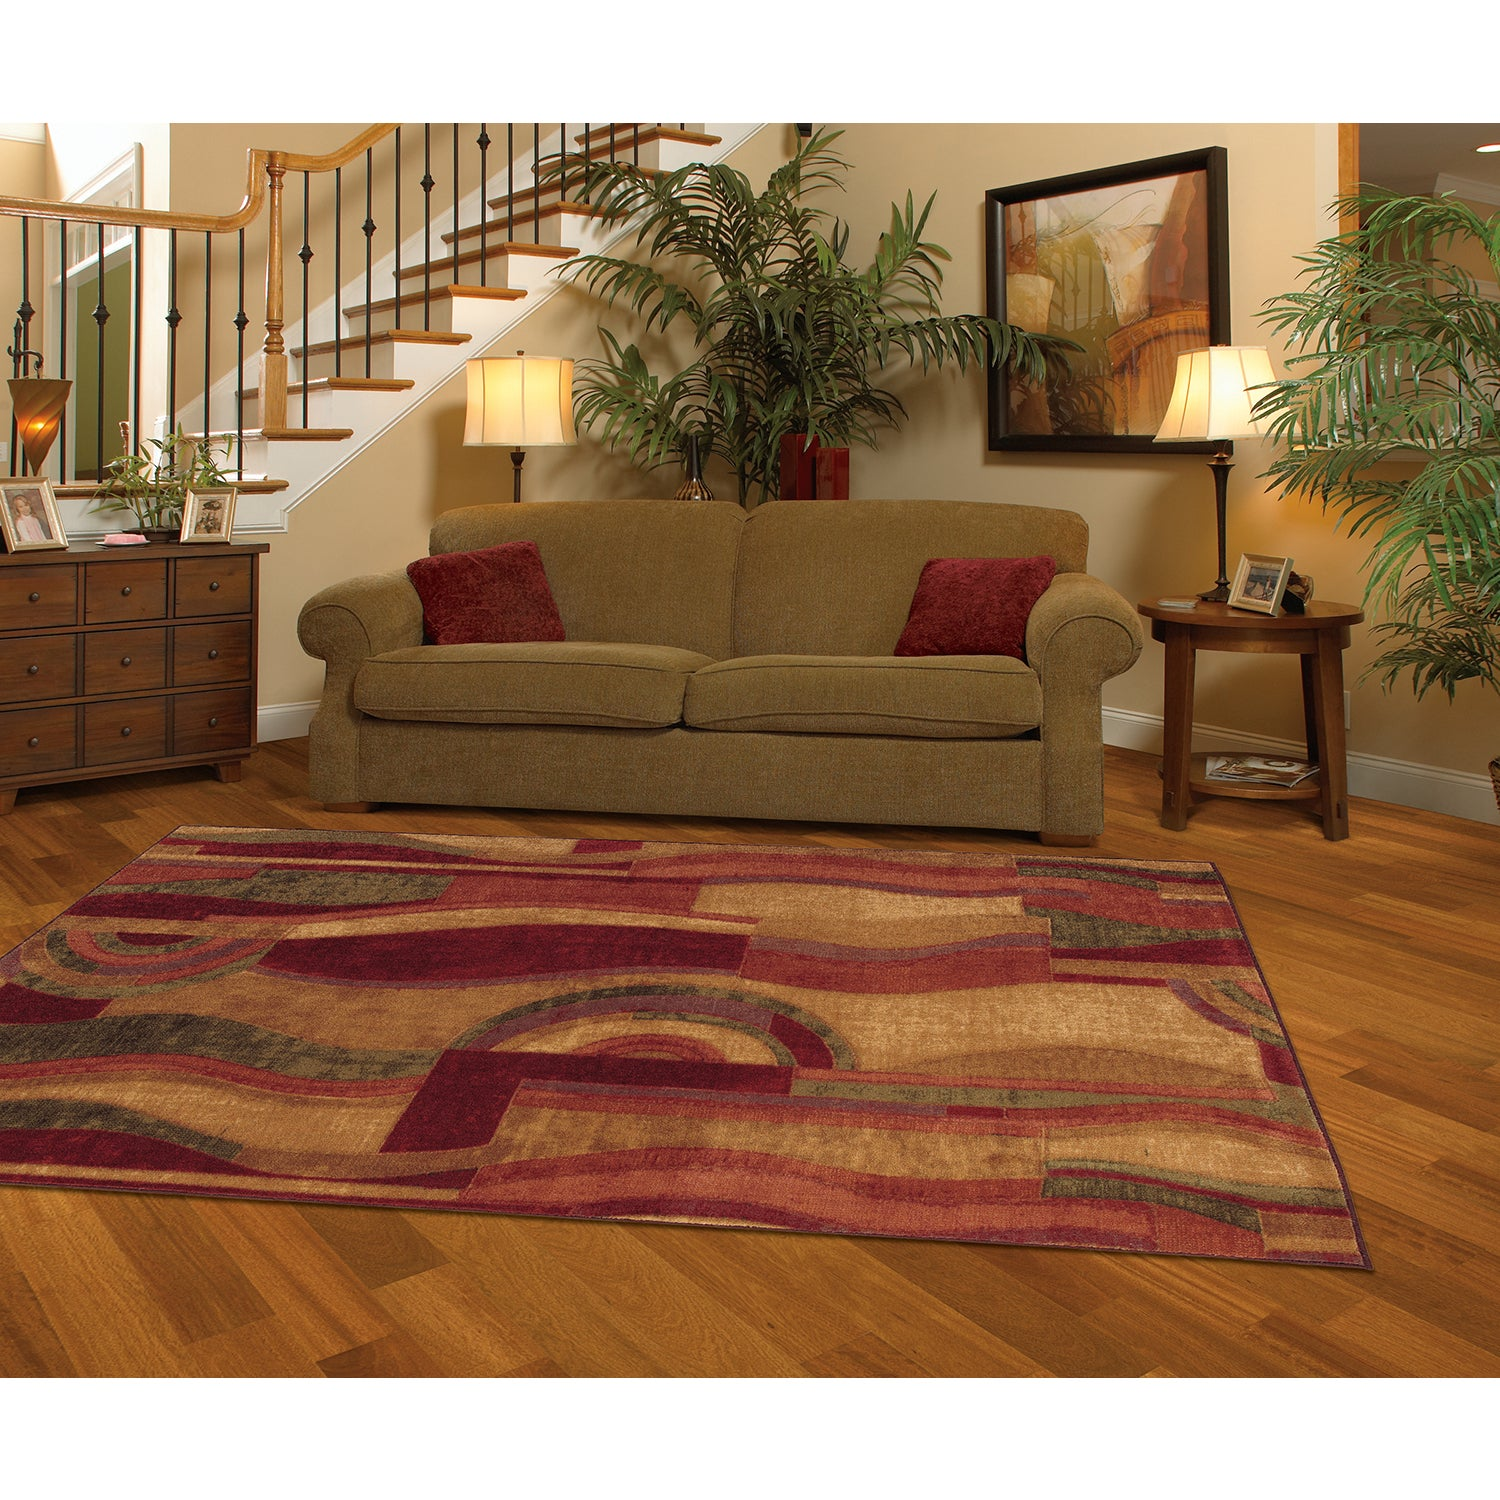 MOHAWK Home New Wave Picasso Wine Area Rug (7'6 x 10') (W...